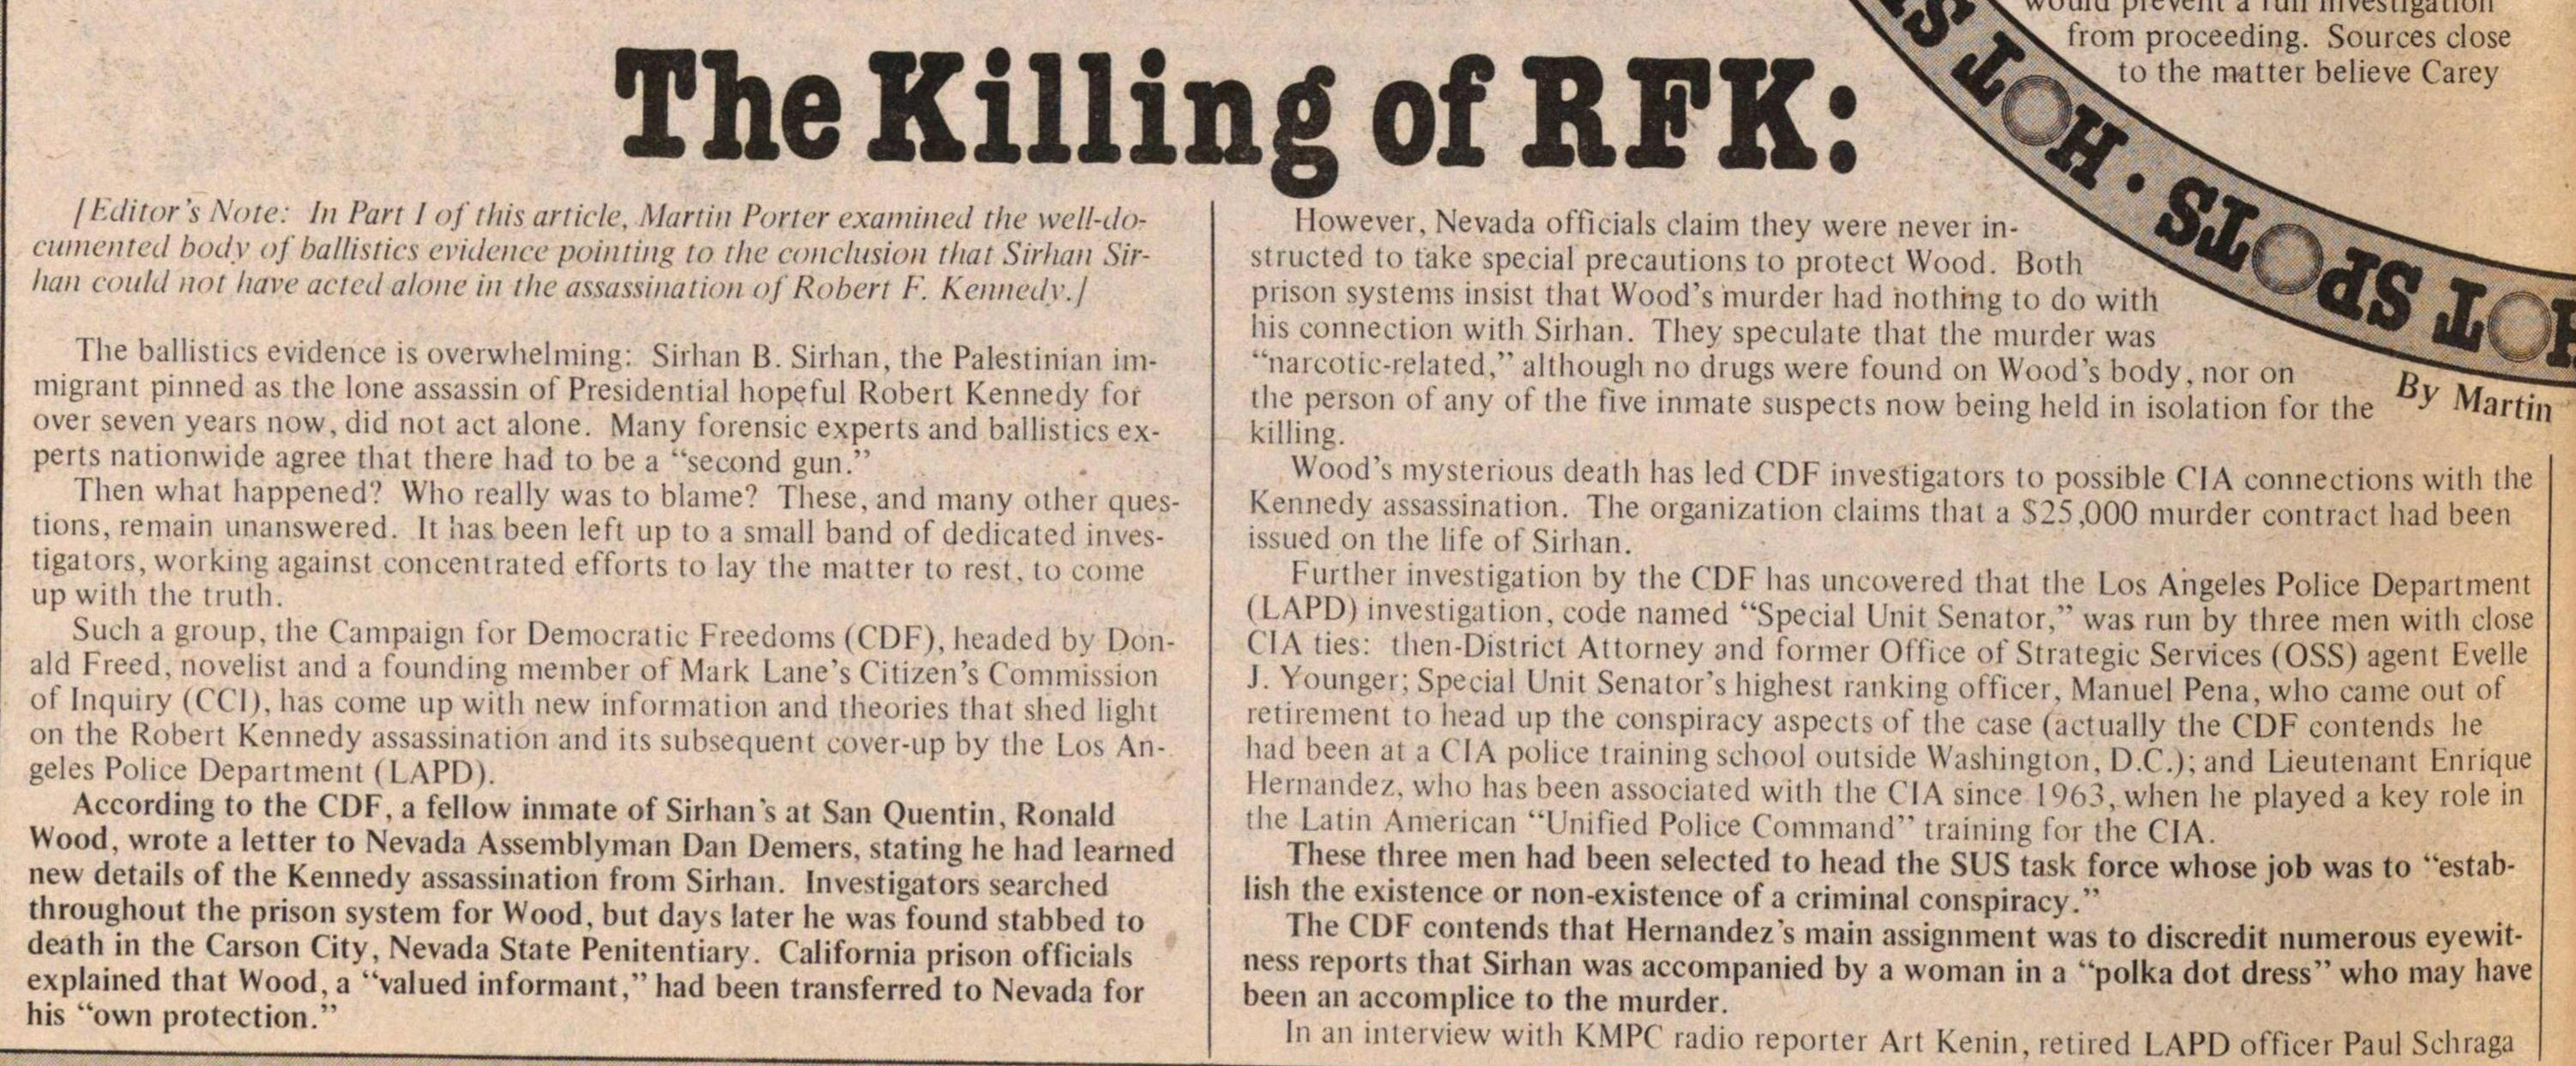 The Killing Of Rfk image